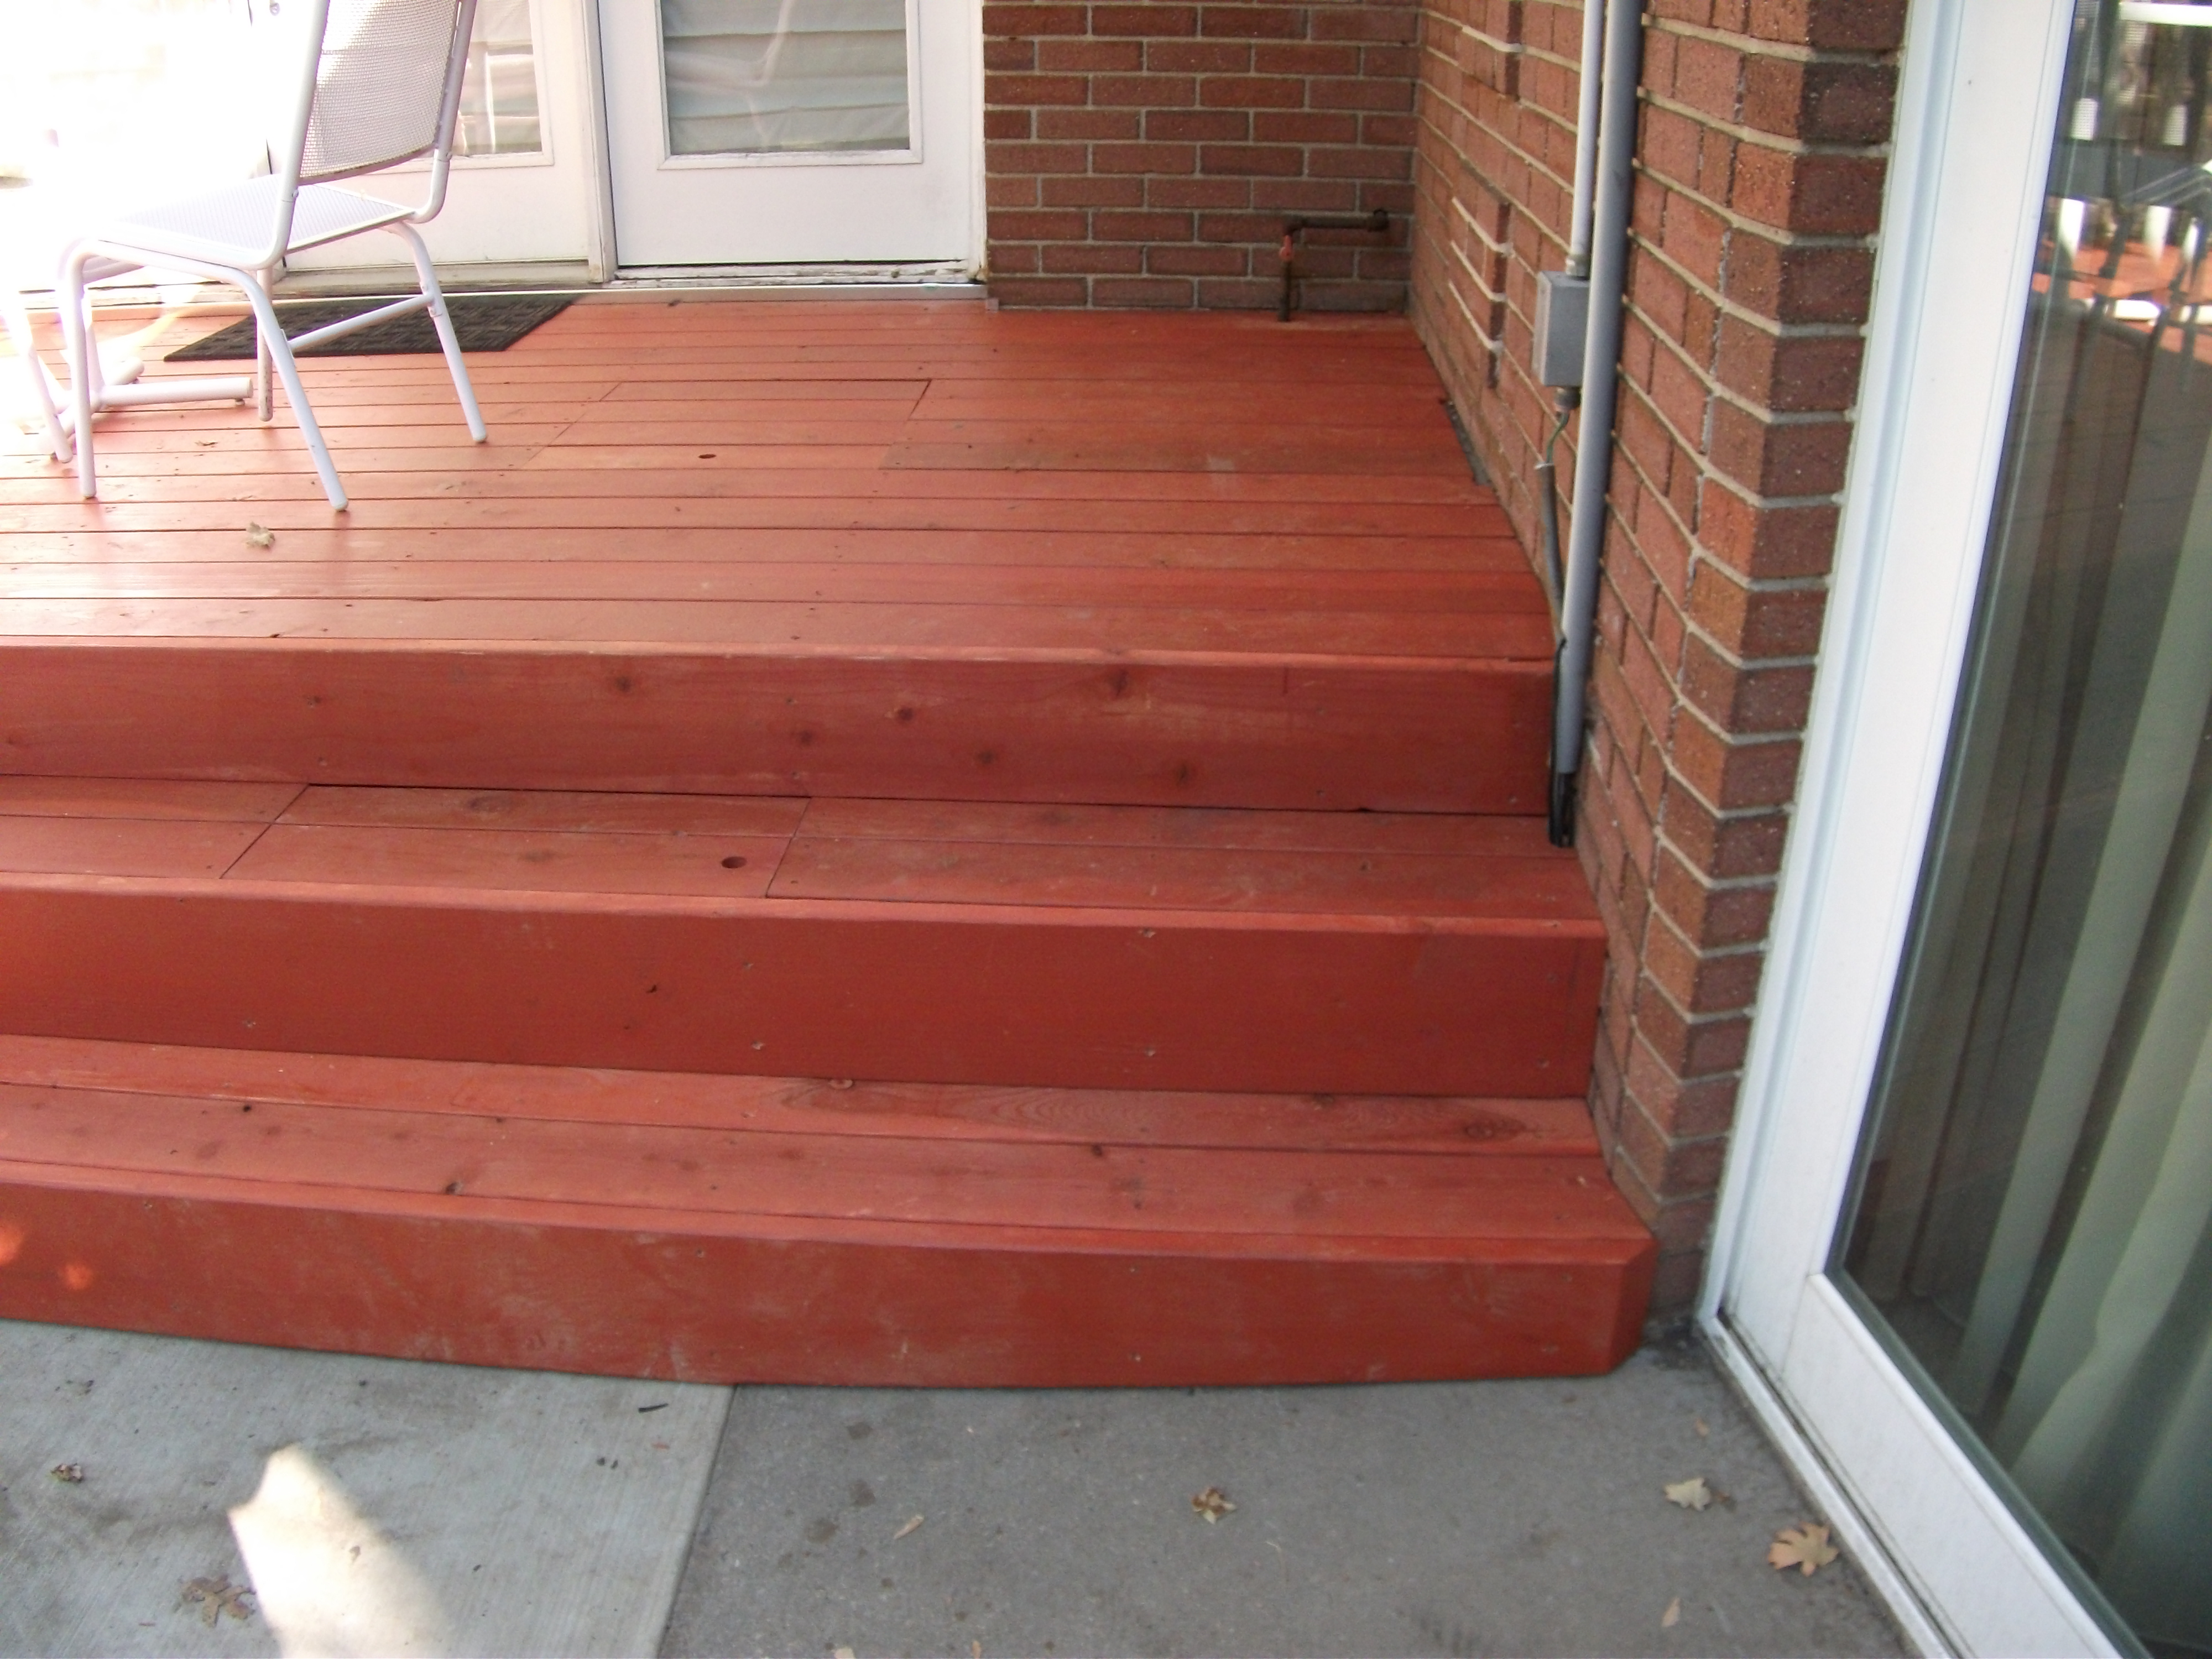 Bountiful Boulevard - After new deck